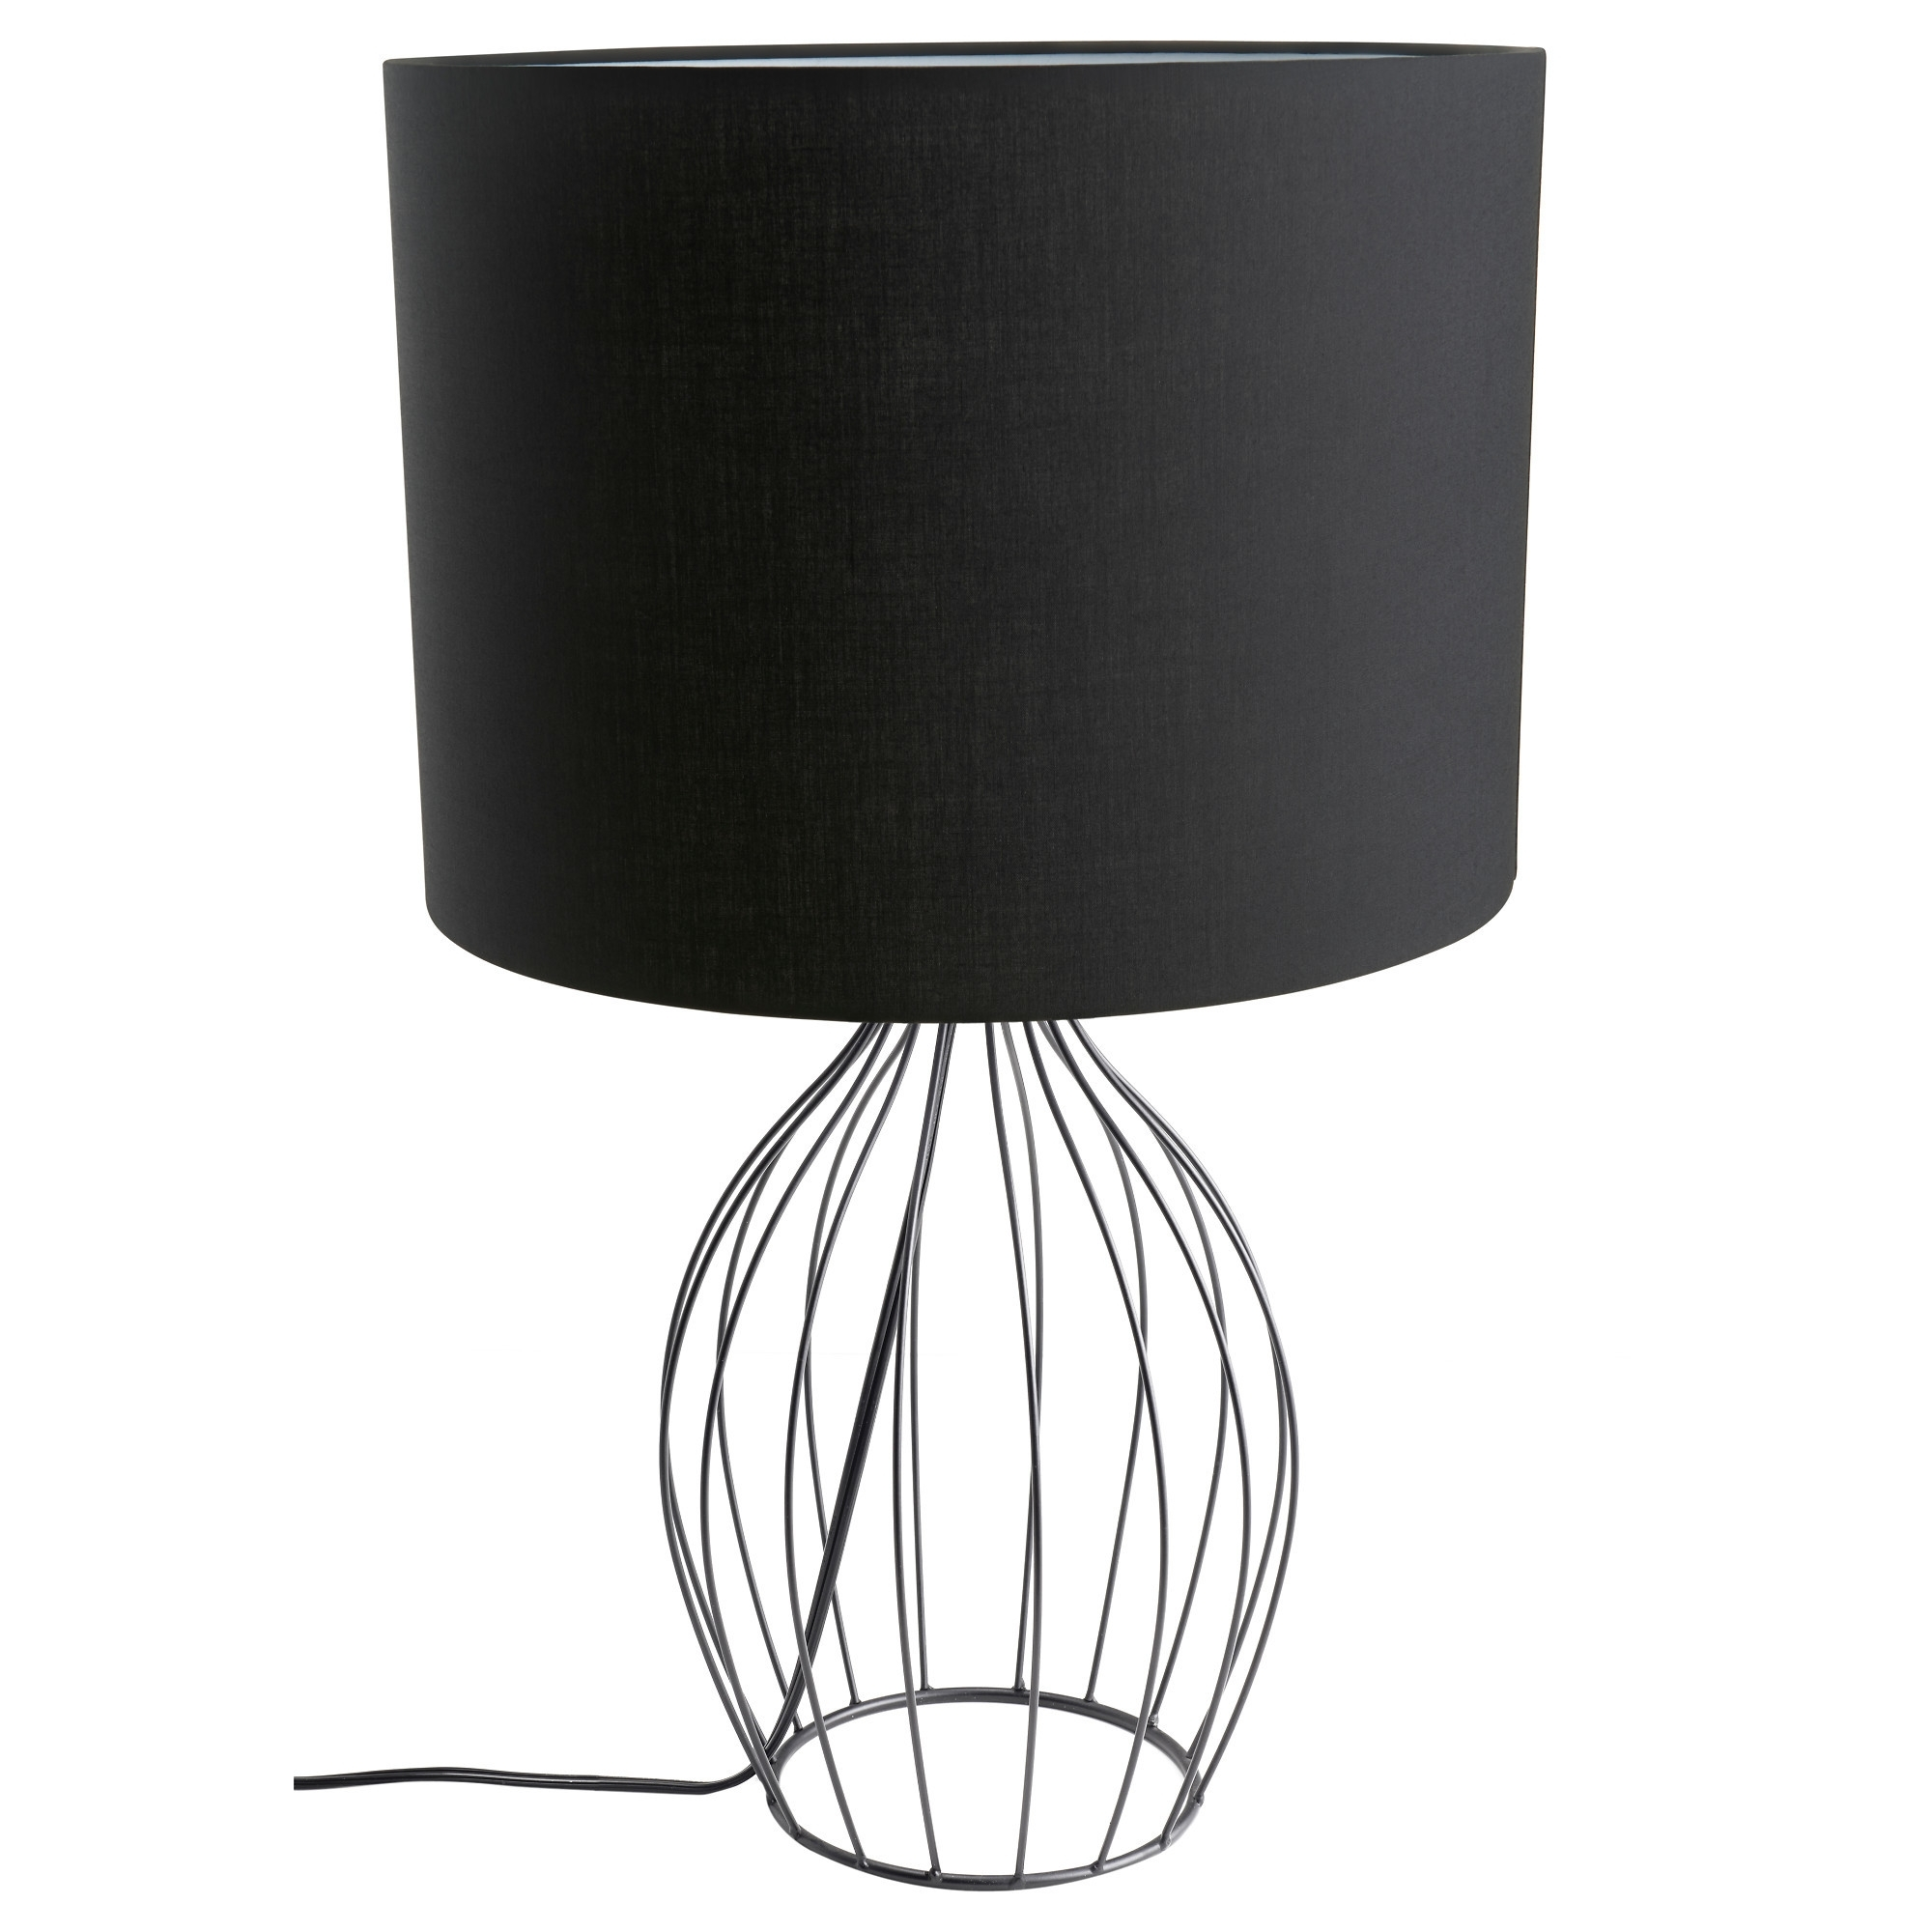 Preferred Living Room Side Table Lamps Table Lamps Ideas For Living Room Intended For Wrought Iron Living Room Table Lamps (View 7 of 20)